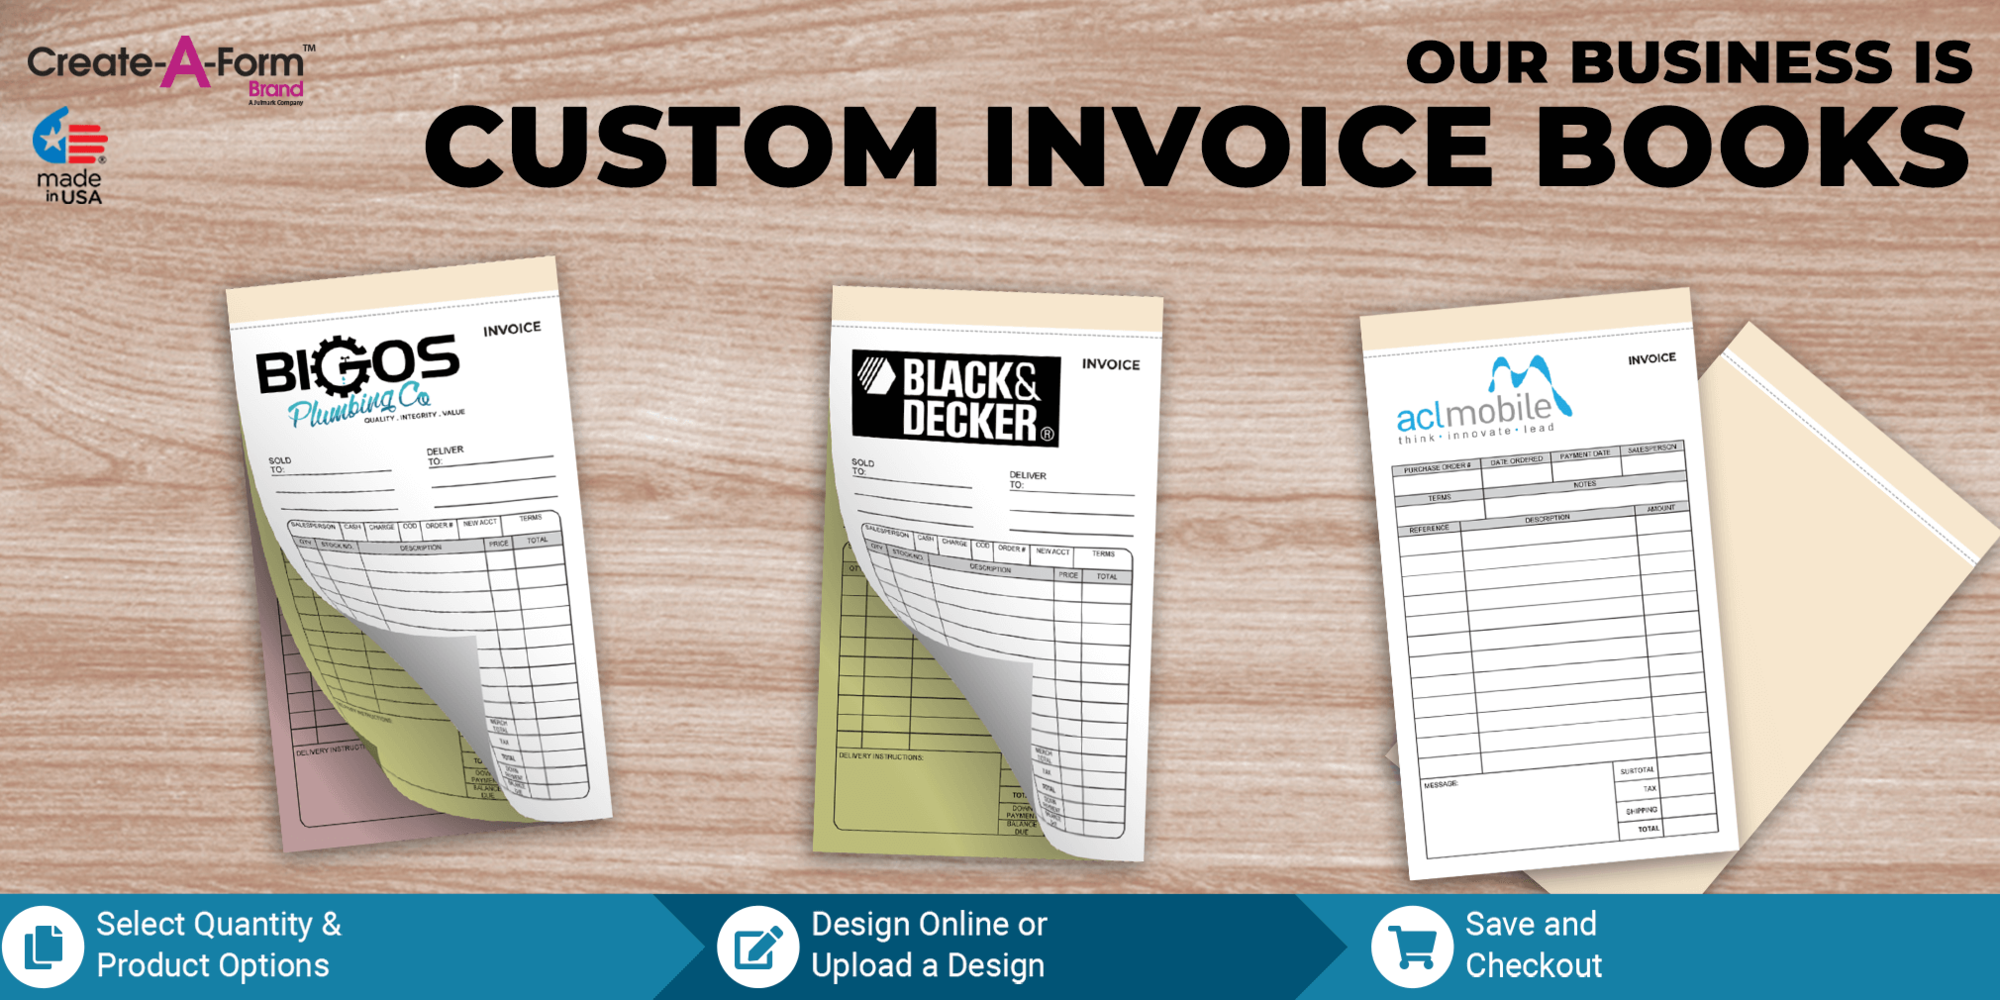 https://printpps.com/images/products_gallery_images/Banner_4_25x7NCR_Invoice_ProdFeat_Cover.png